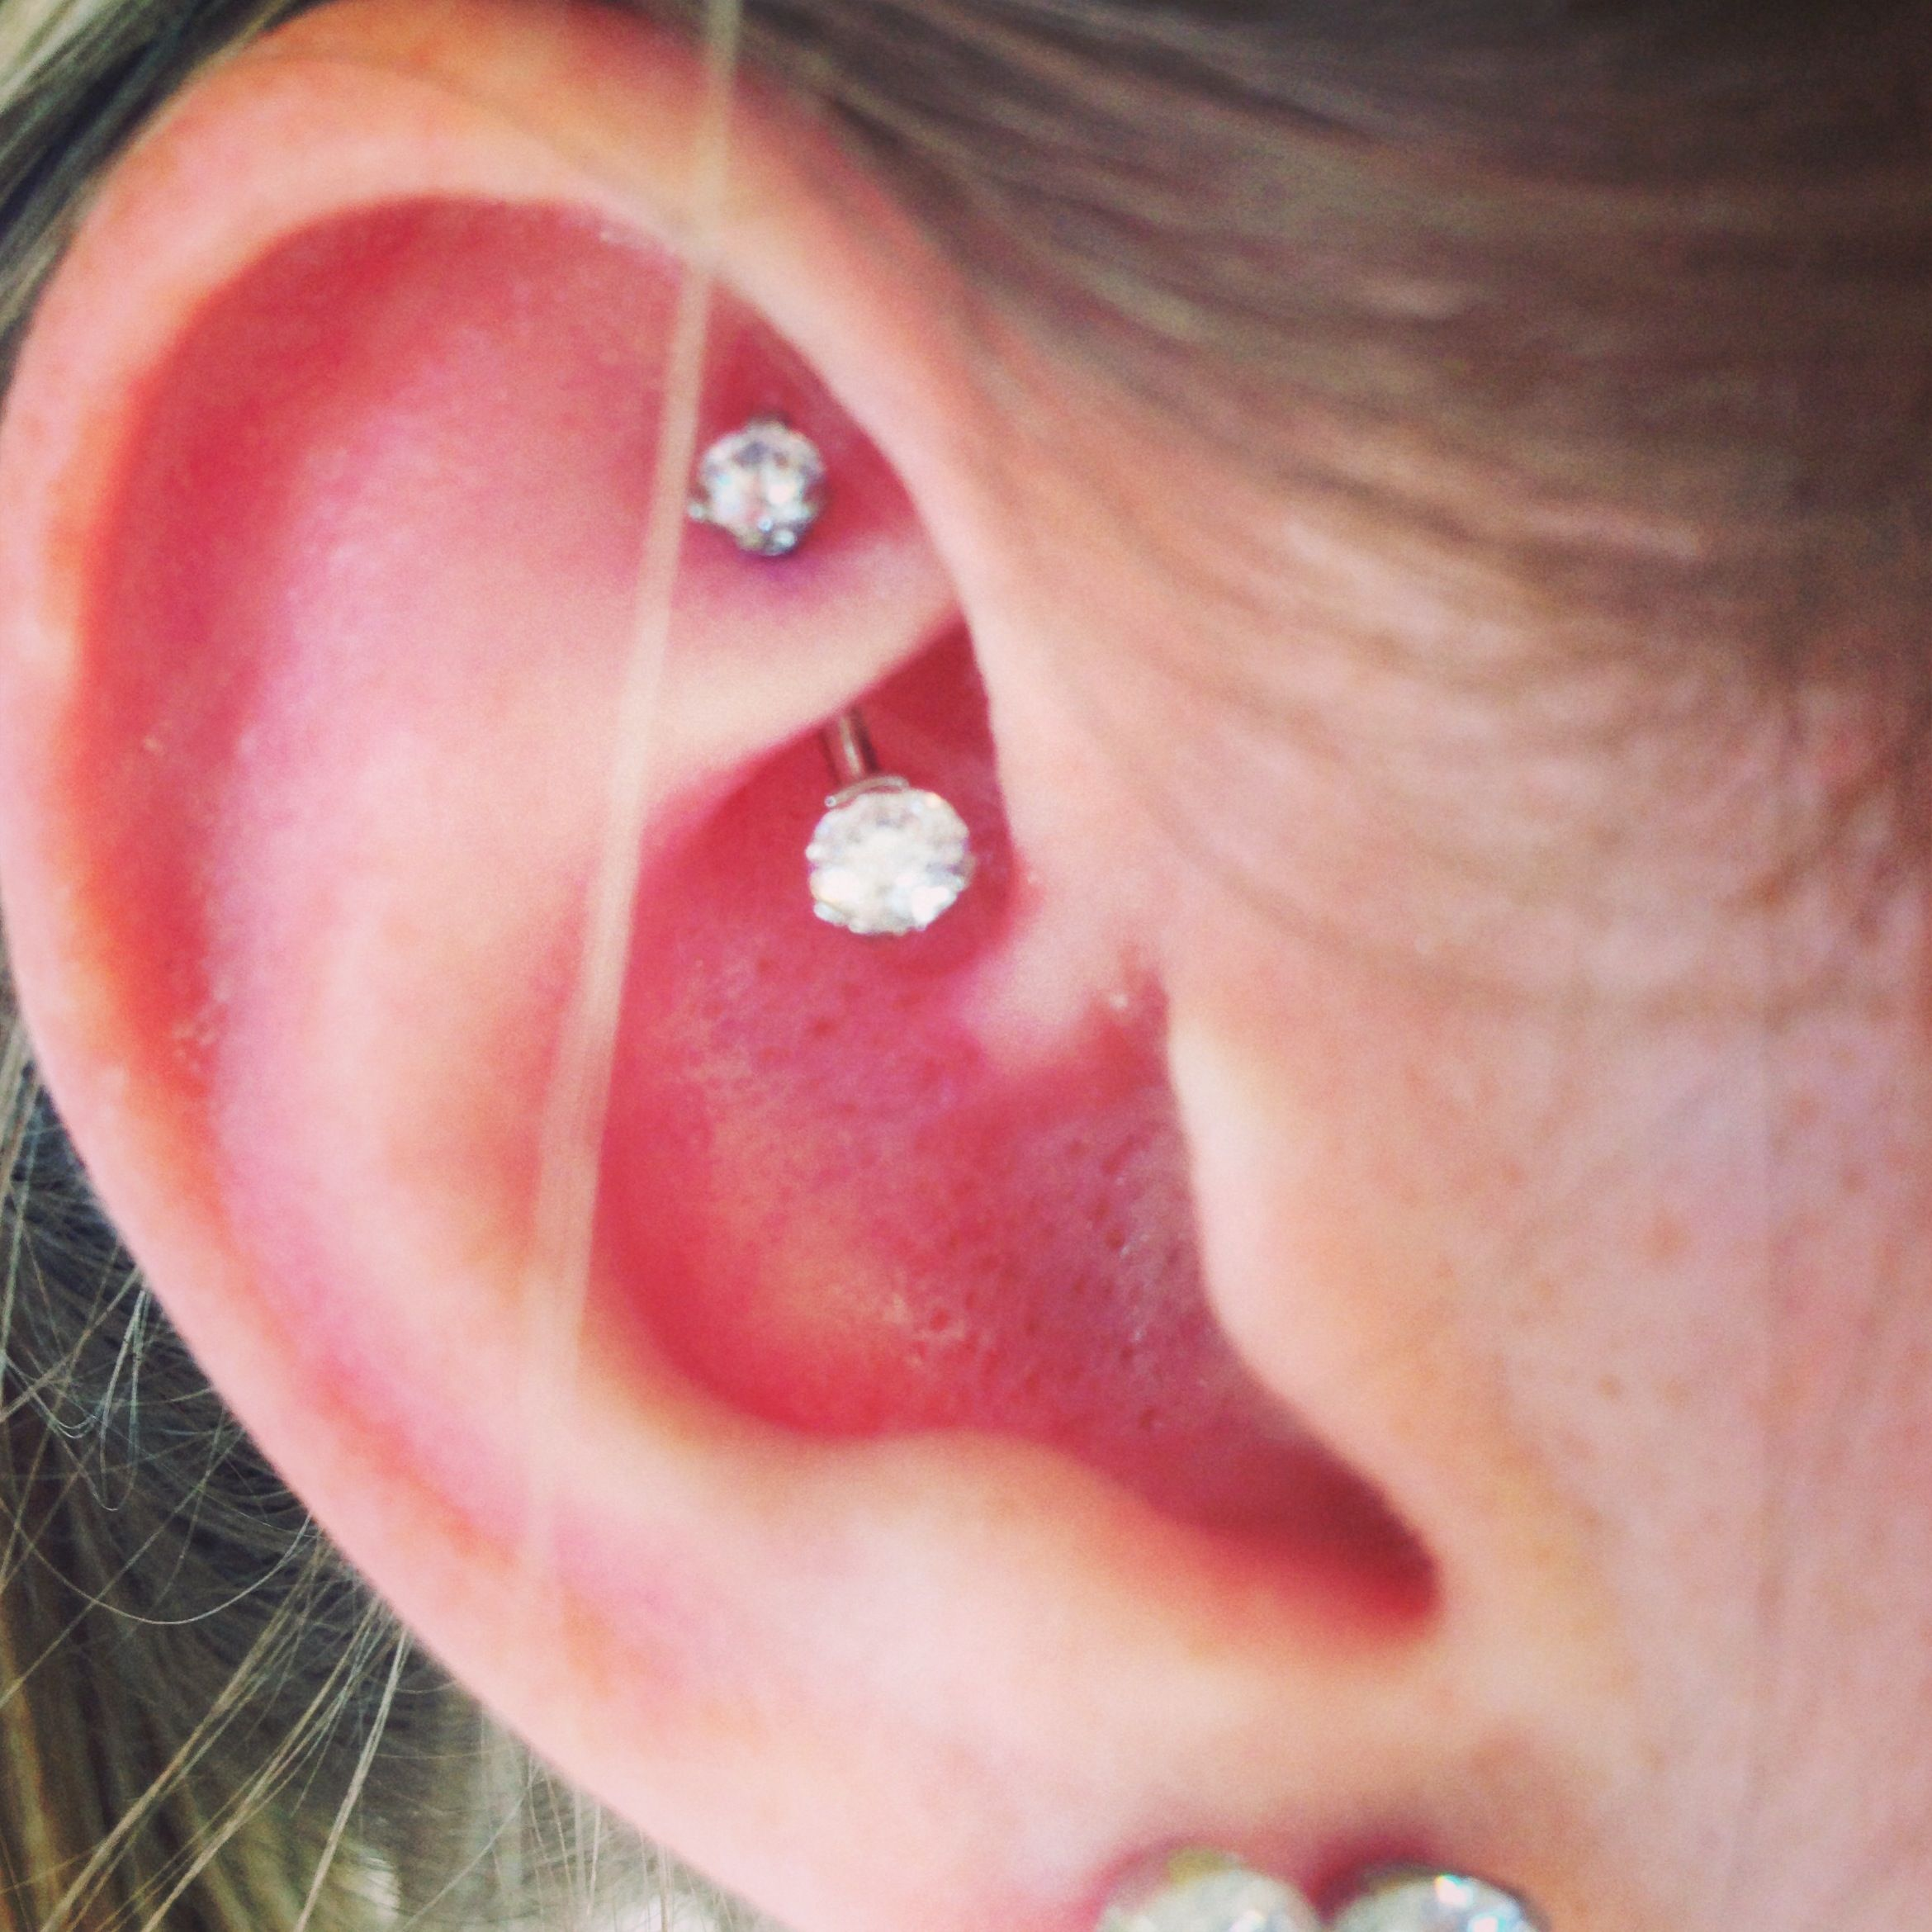 My latest rook piercing that I absolutely adore 3